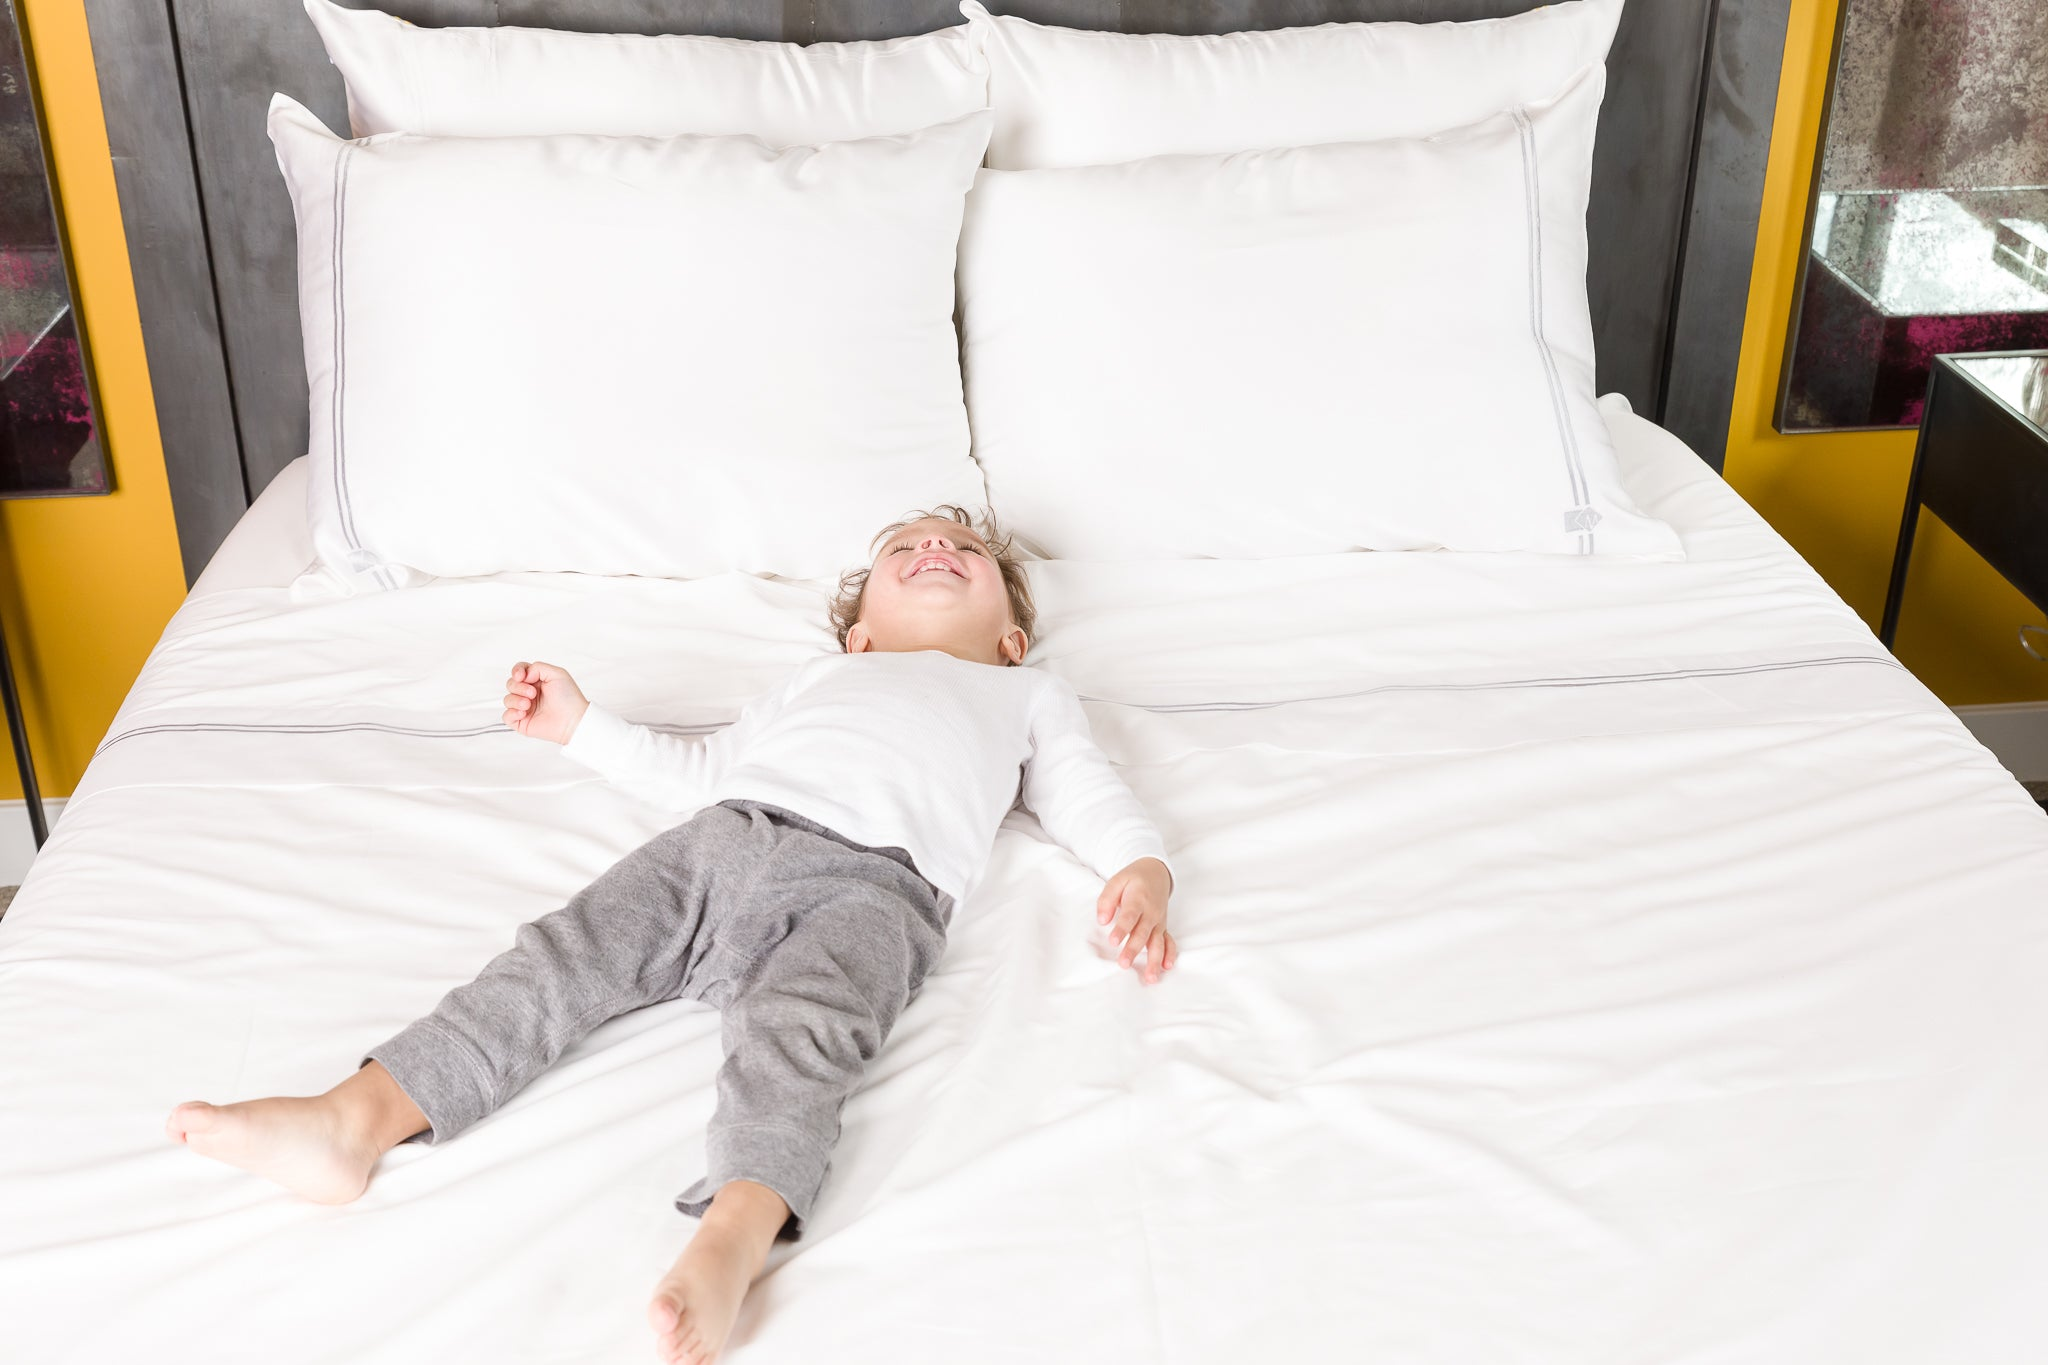 Luxury bedding from Mismatch - boy laying on mulberry silk pillowcase with cotton sheets that match.  Mixing Fabrics, Matching Style. Beauty benefits- anti-aging, health, reduce wrinkles, natural skincare, hypoallergenic, curly natural hair